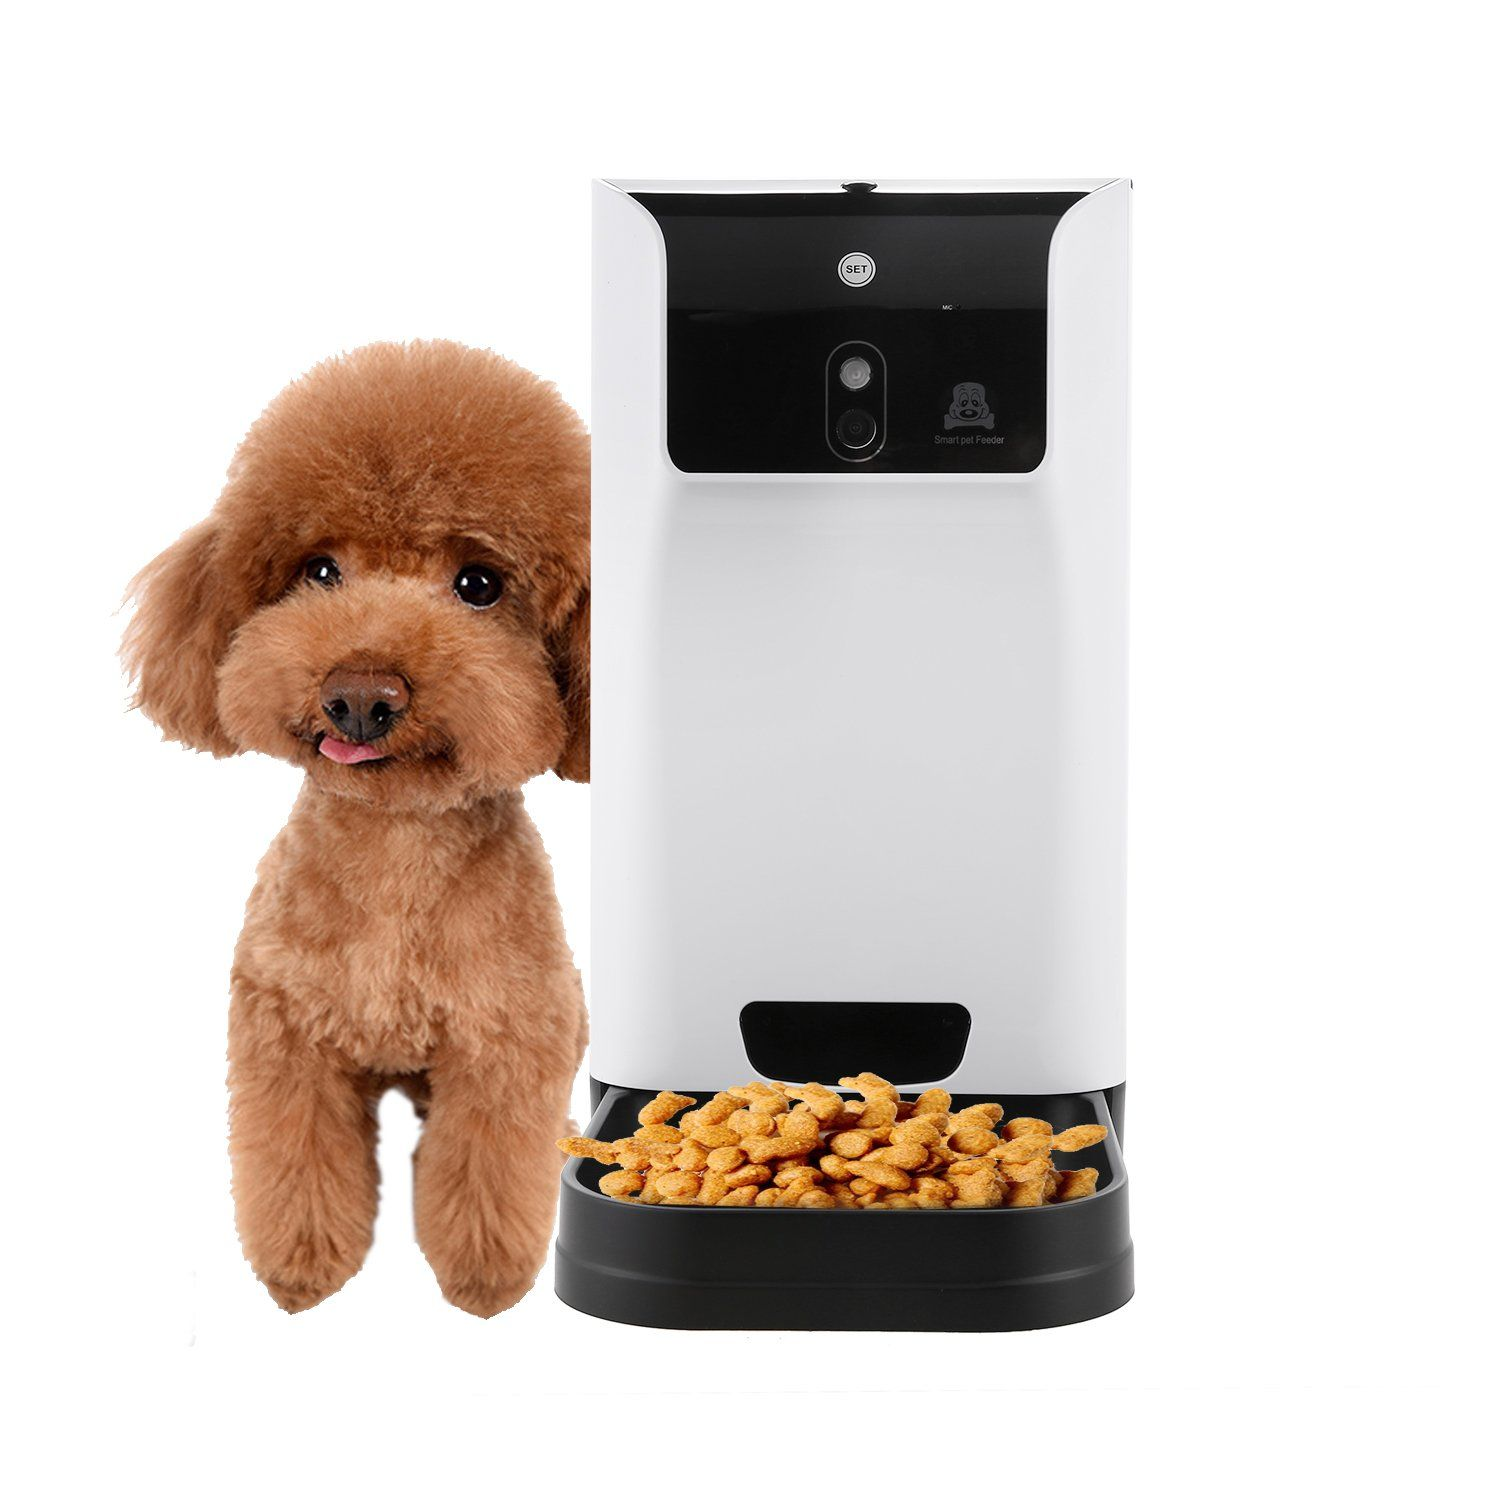 Flagup Smart Automatic Pet Feeder with Voice Recorder